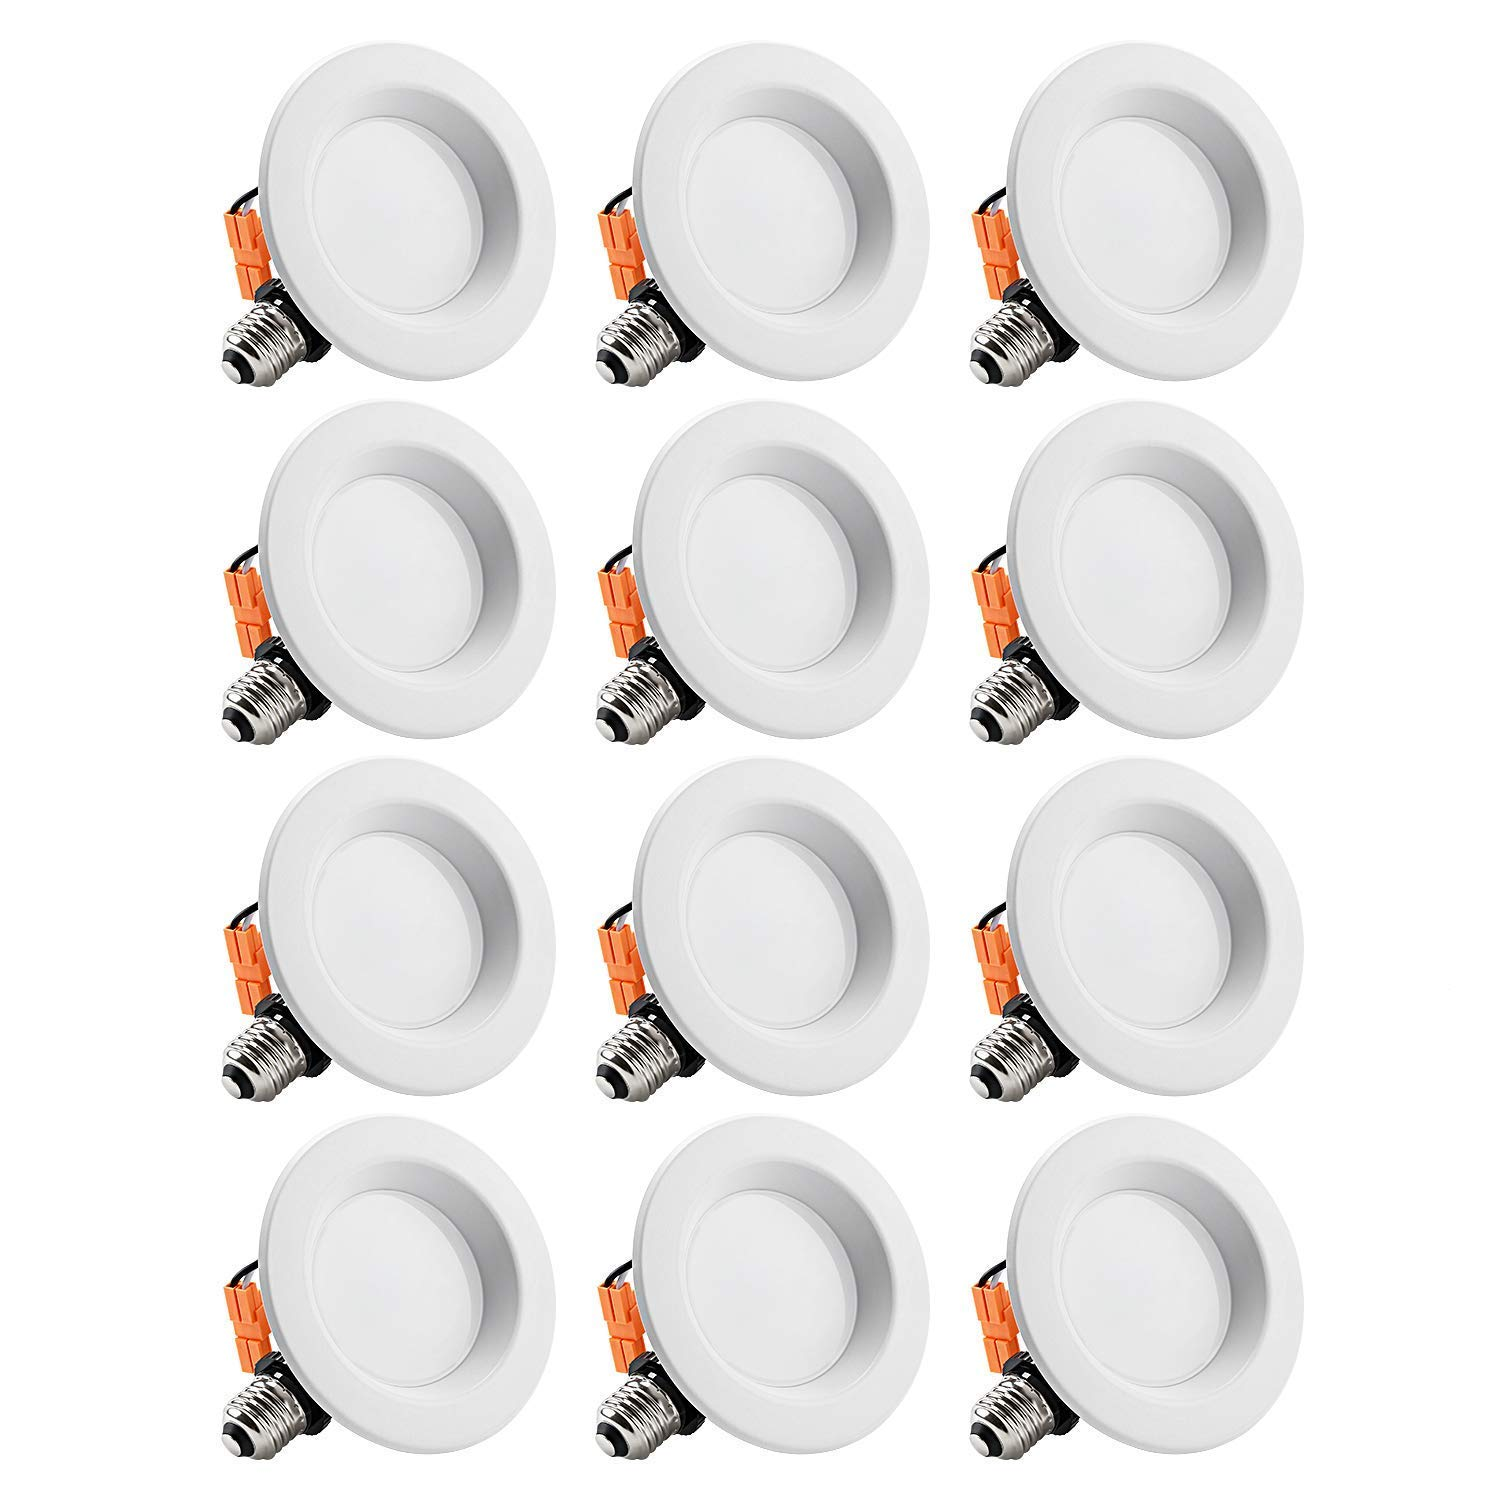 TORCHSTAR 12-Pack 4 inch Dimmable Recessed LED Downlight, 10W (65W Equivalent), CRI 90, ETL Listed, 5000K Daylight, 700lm, LED Retrofit Lighting Fixture, 5 Years Warranty